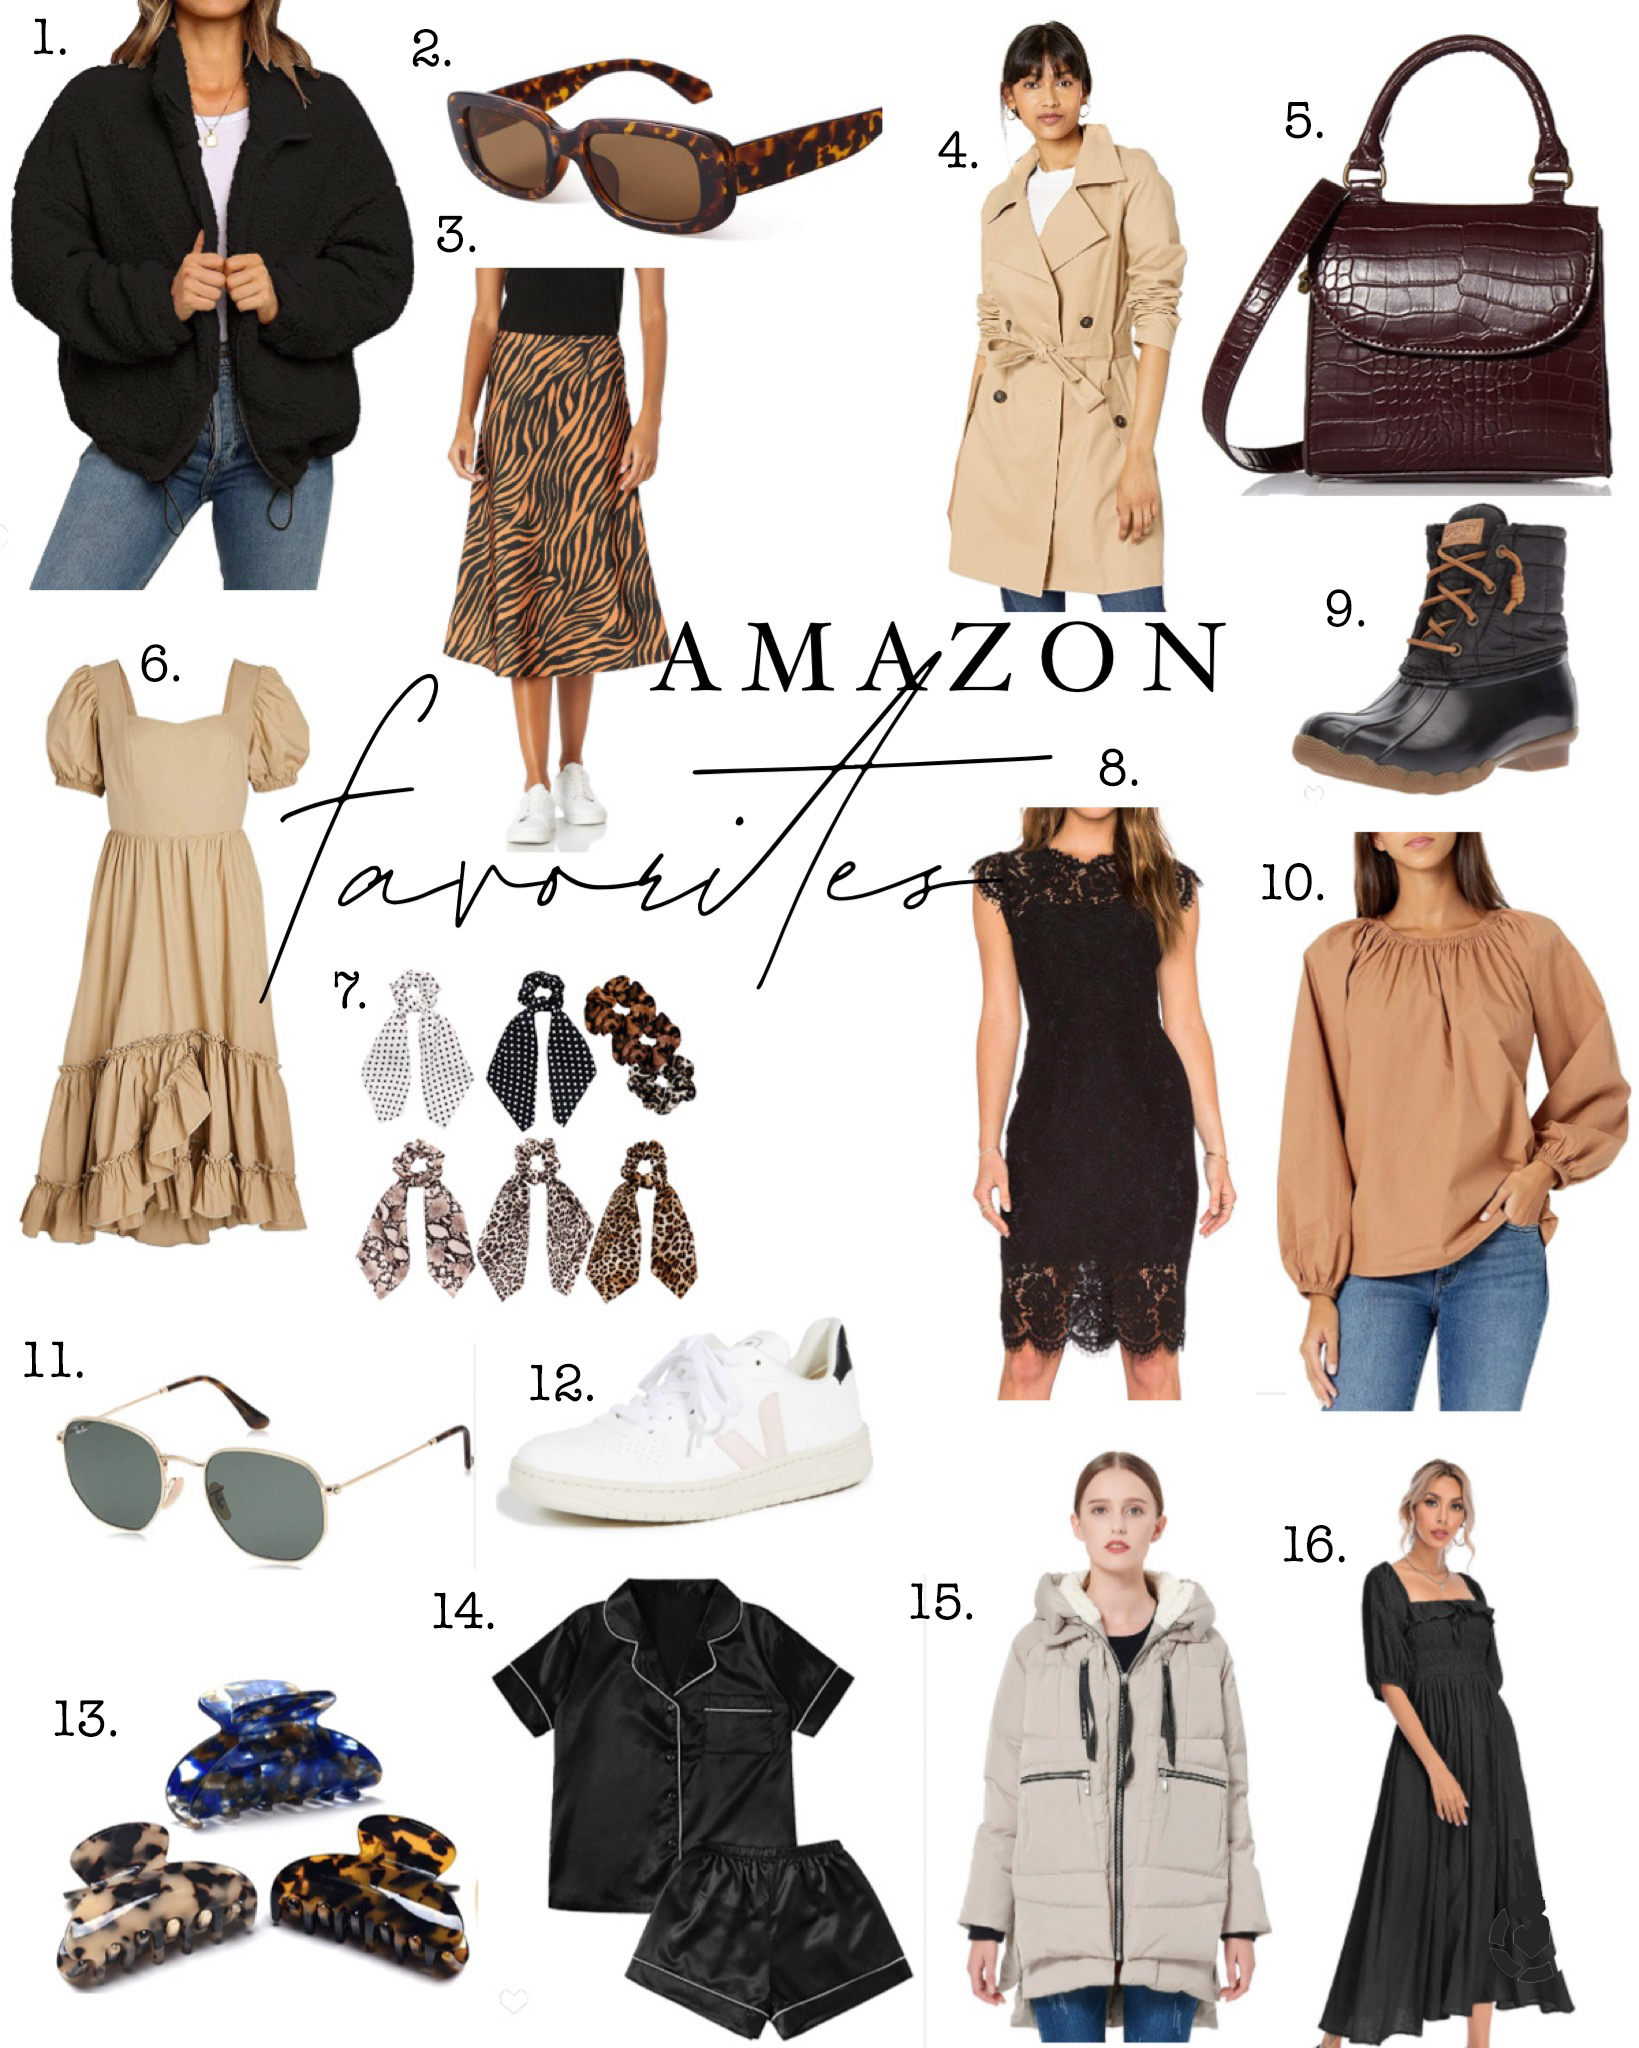 Amazon fashion favorites numbered